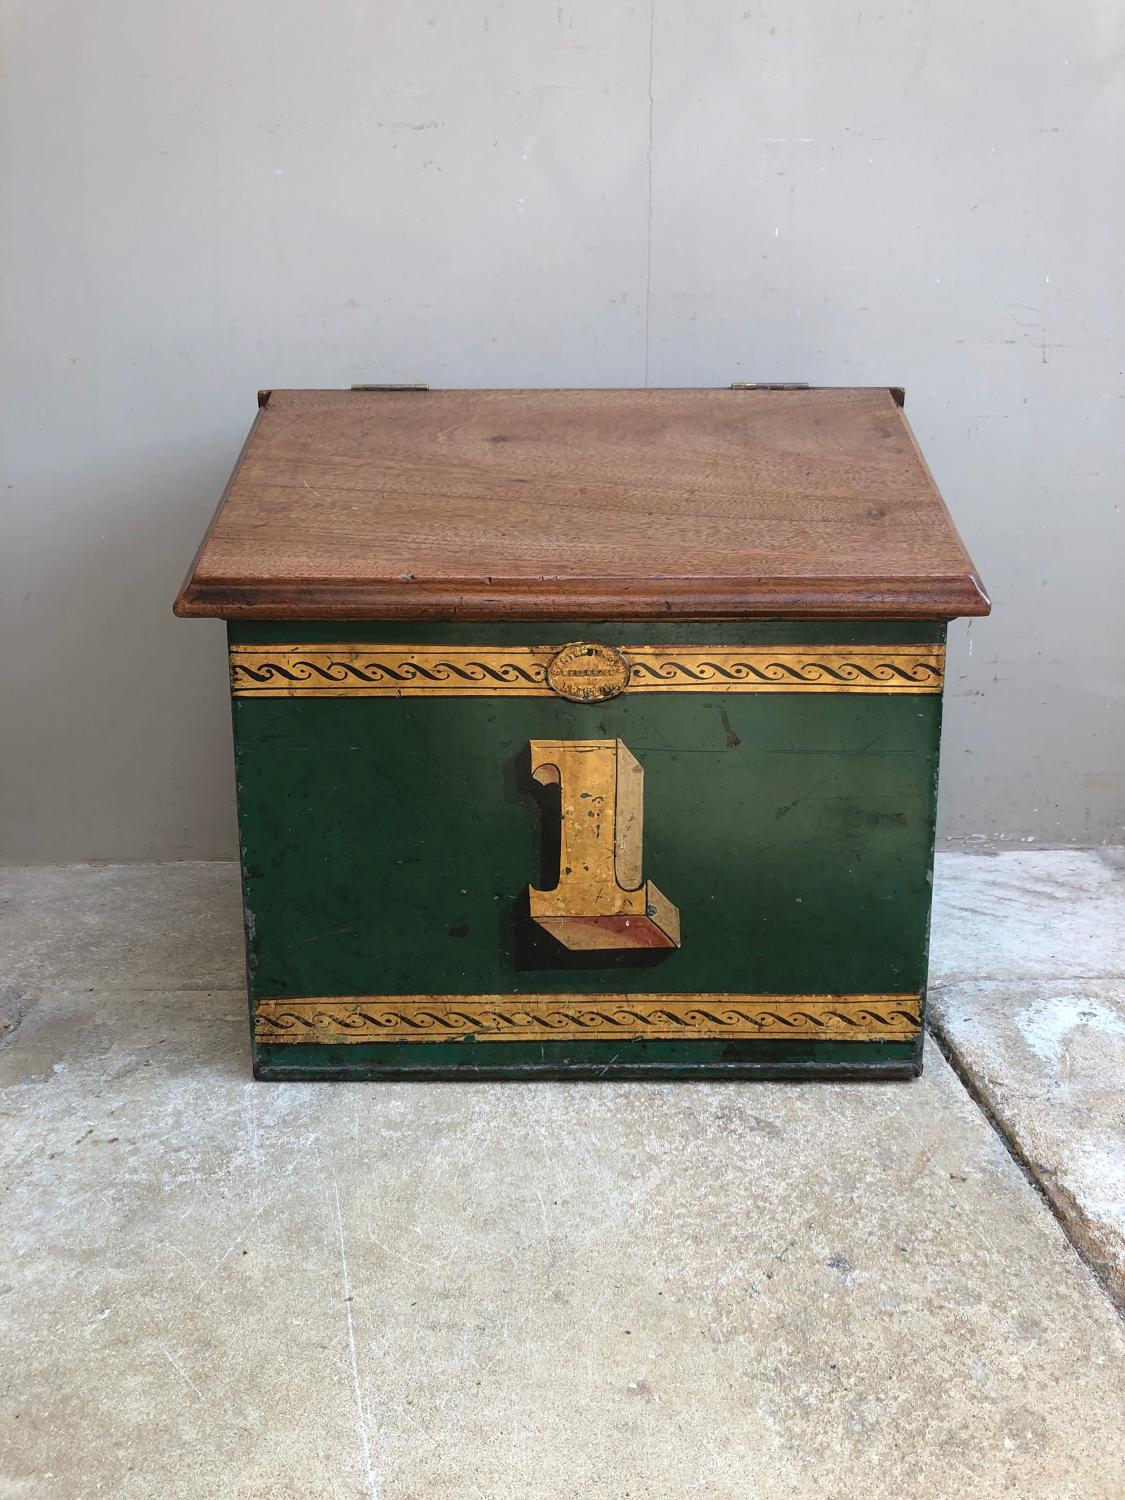 Victorian Shops Toleware Tea Bin - No 1 - Superb Condition